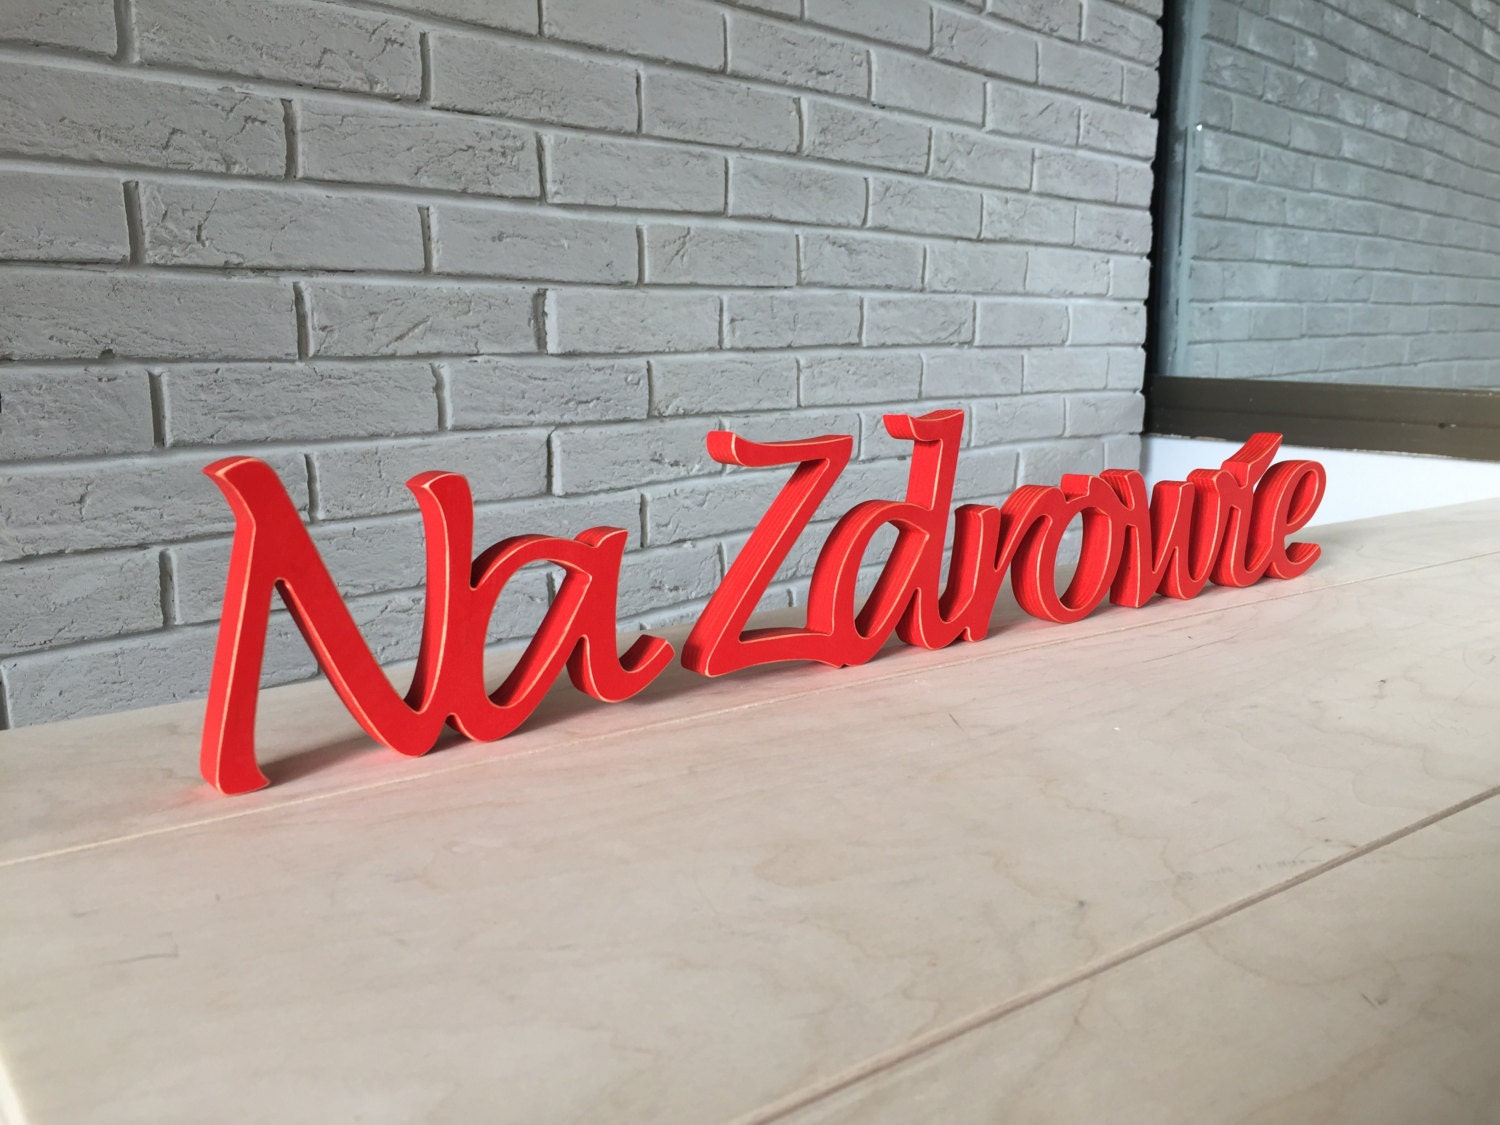 rustic wood sign na zdrowie, cheers in polish, restaurant decor